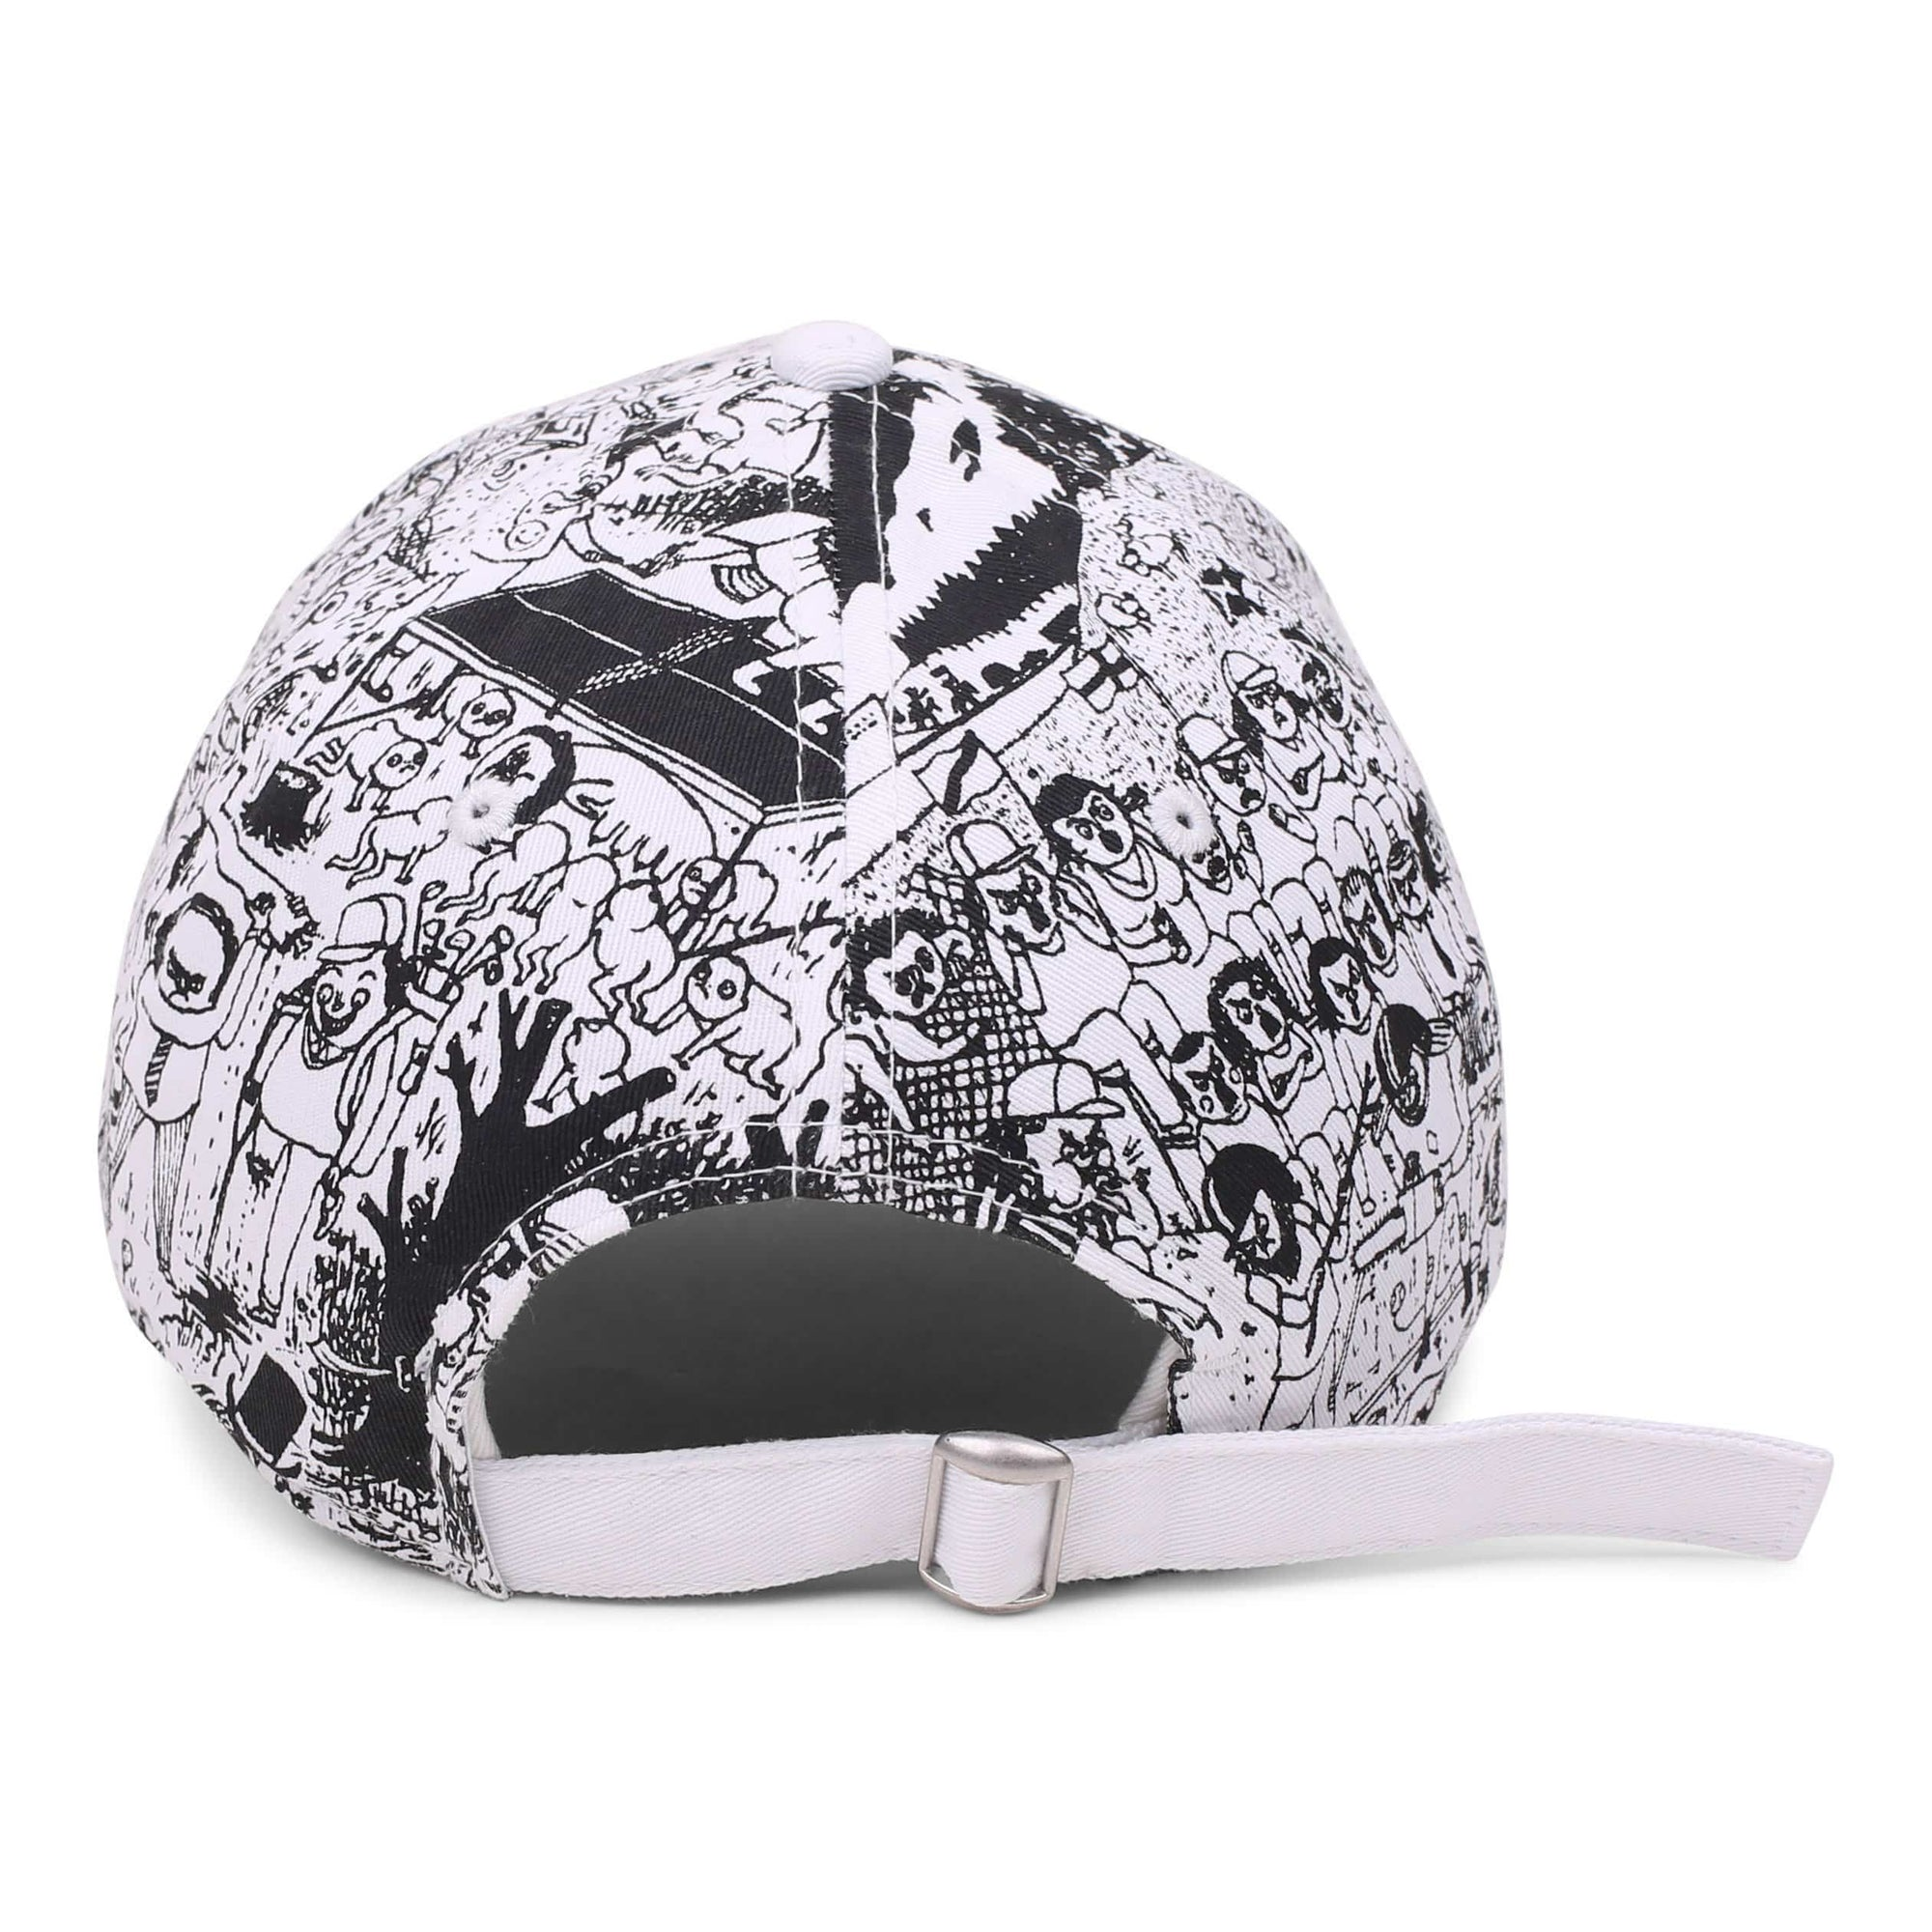 Father John Misty 'Pure Comedy' x New Era 9Twenty Dad Hat // White